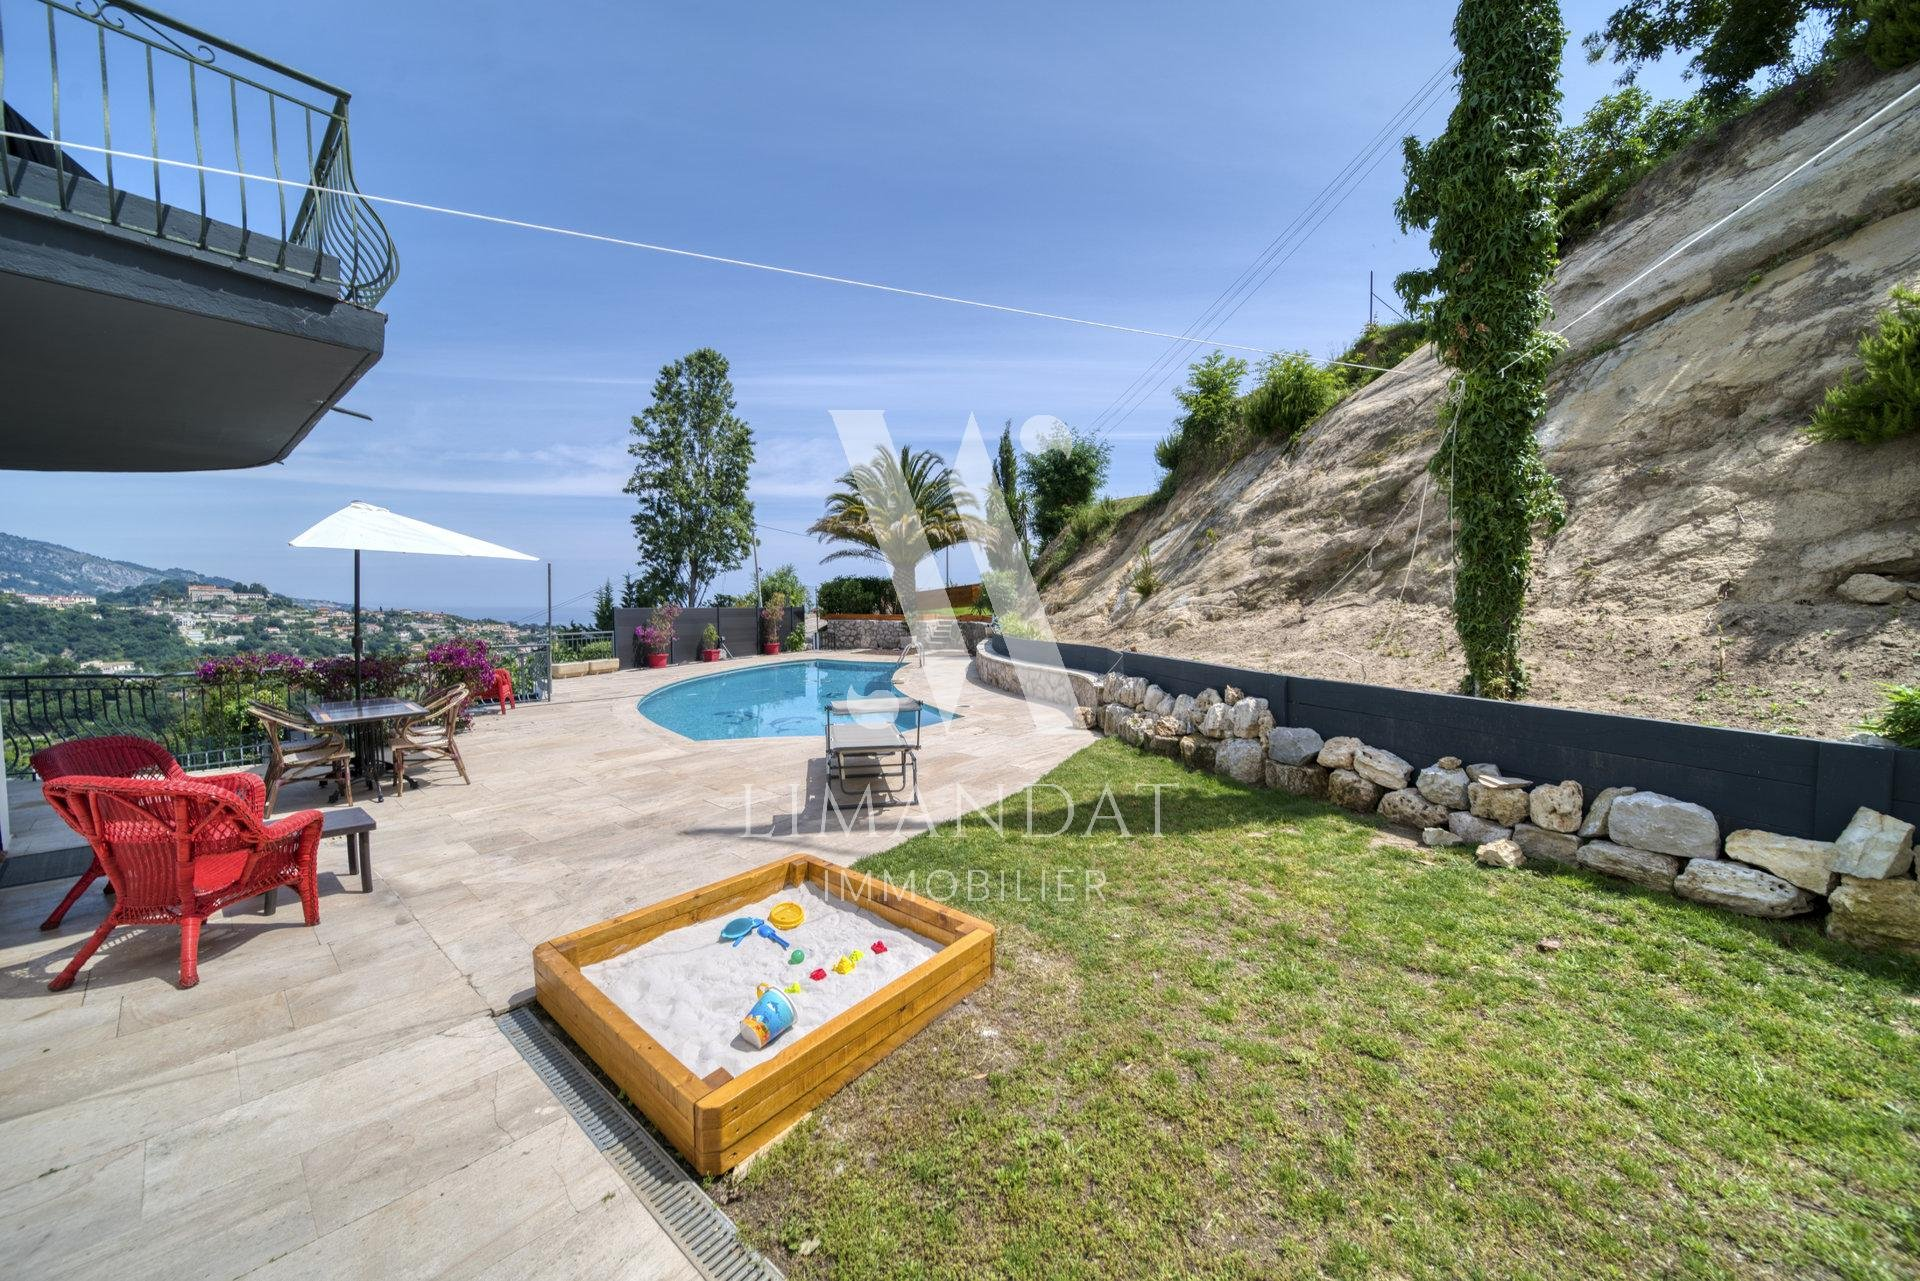 Menton - Villa 163 m2 garage 42 m2 land 2,350 m2 - construction potential